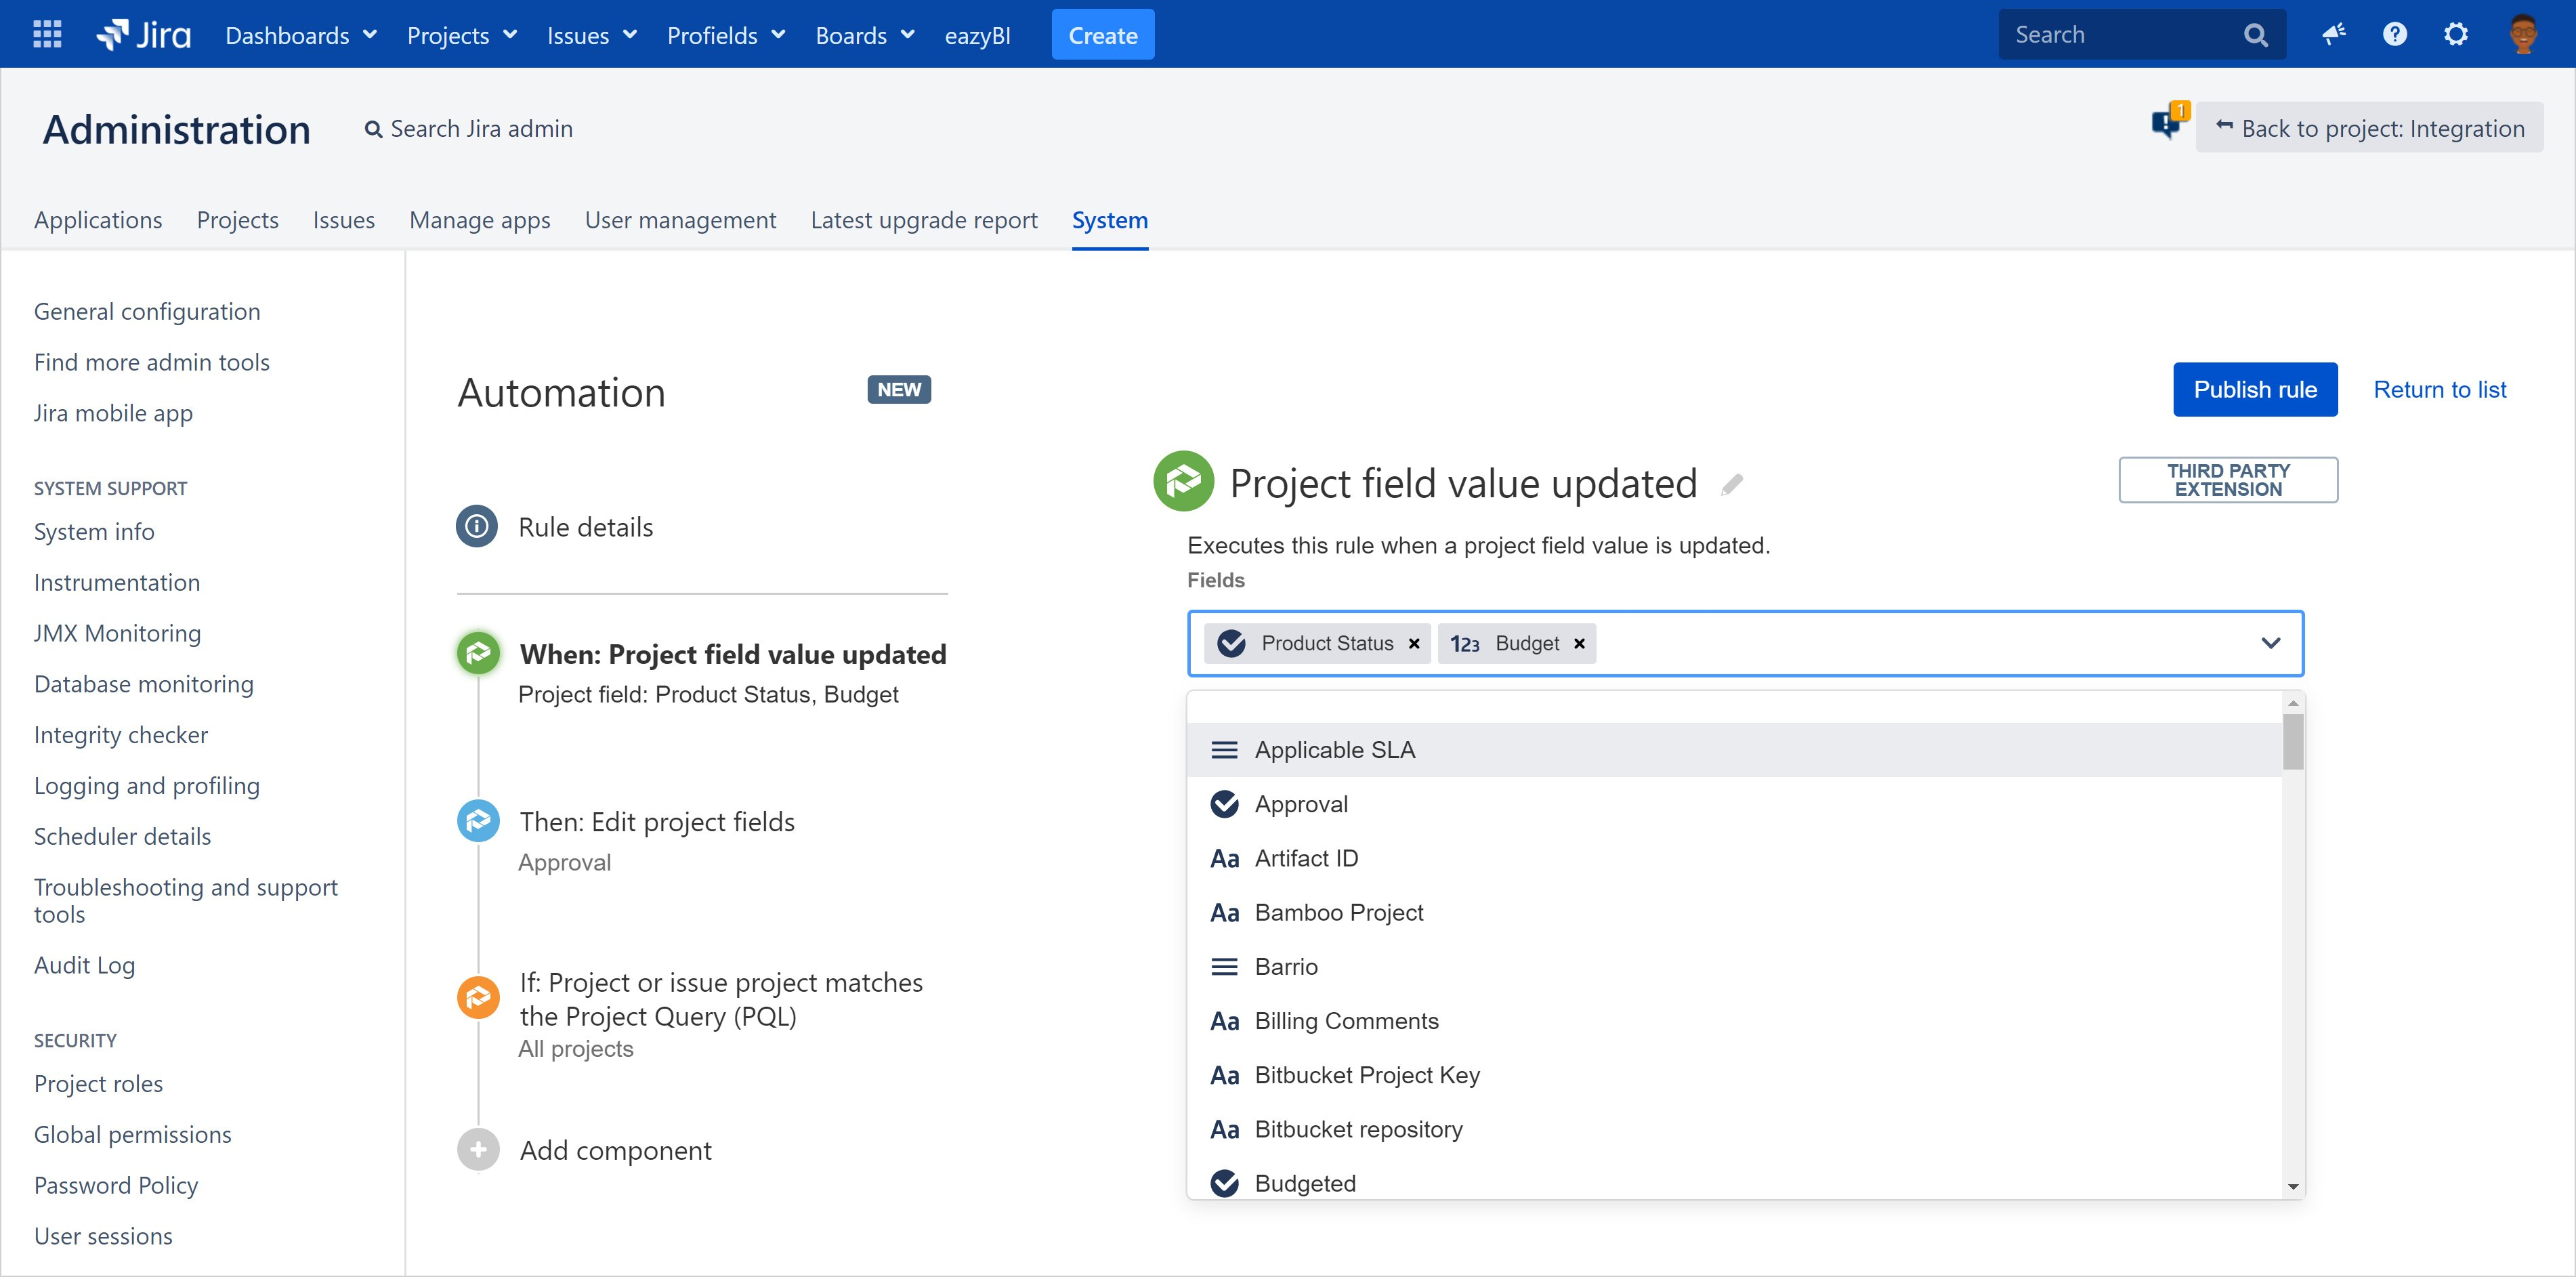 The integration of Automation for Jira and Profields to track projects in Jira represents a  turning point in the automation of tasks directly related to project information_trz_3